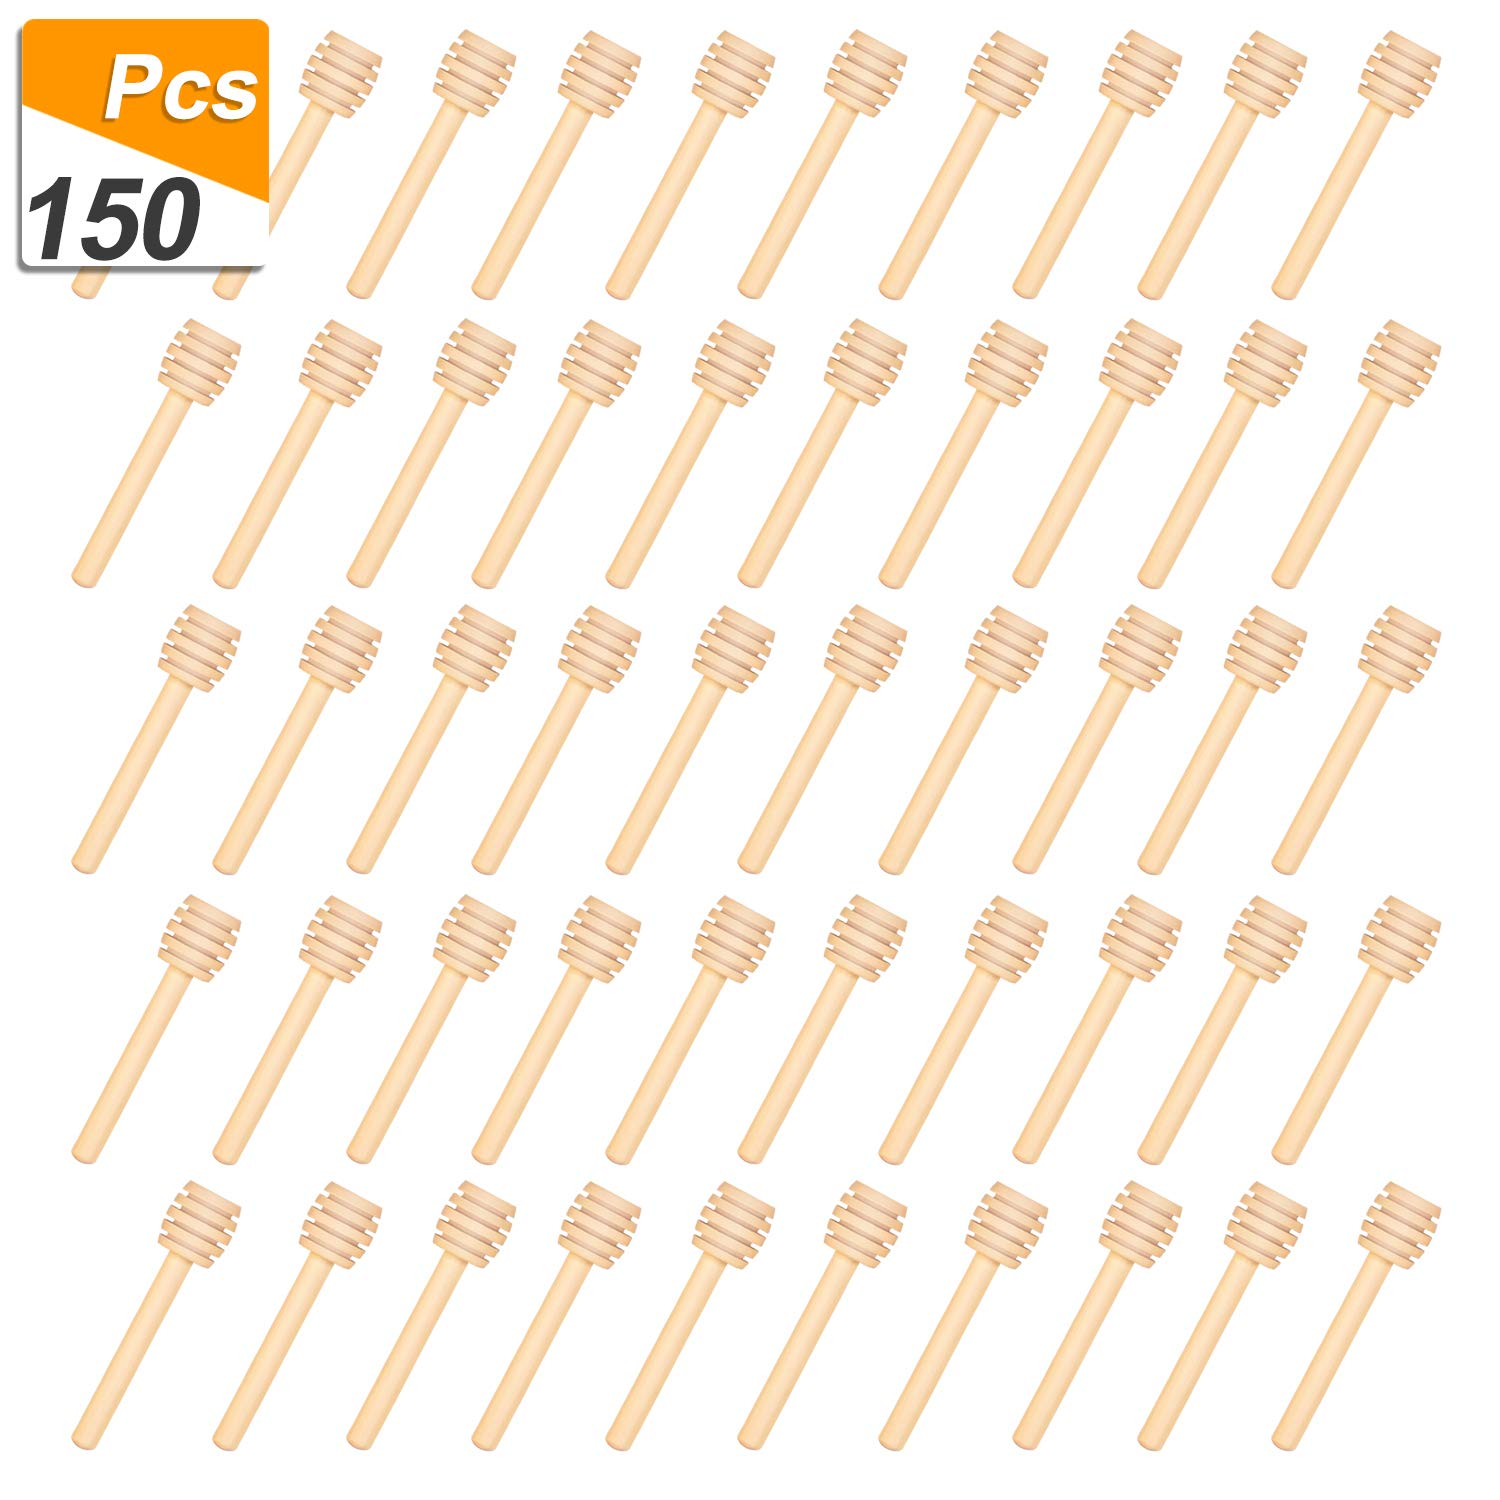 150 Pack 3 Inch Mini Wood Honey Dipper Sticks, Individually Wrapped, Server for Honey Jar Dispense Drizzle Honey by Thyores